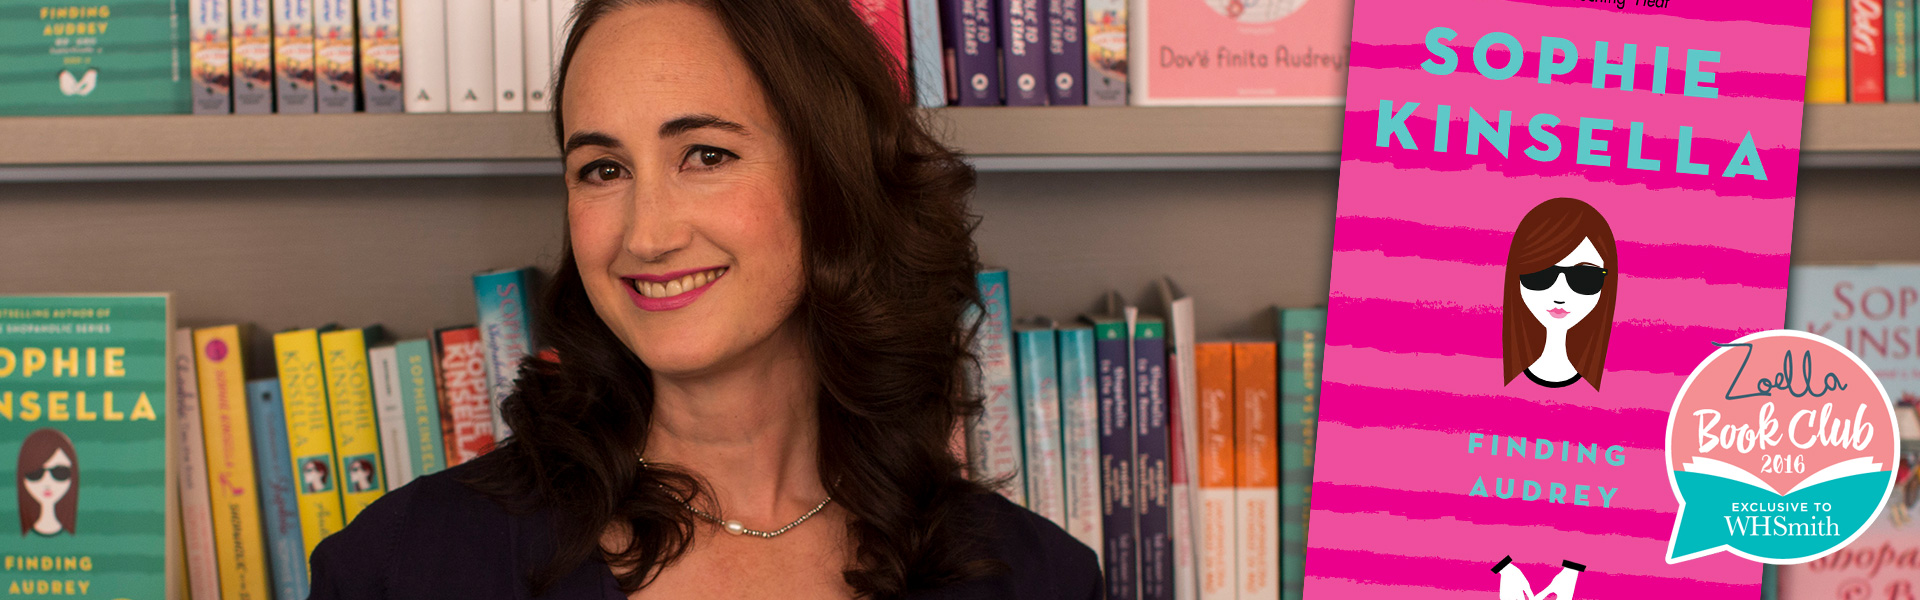 Exclusive Video! Sophie Kinsella's Favourite Scene from Finding Audrey